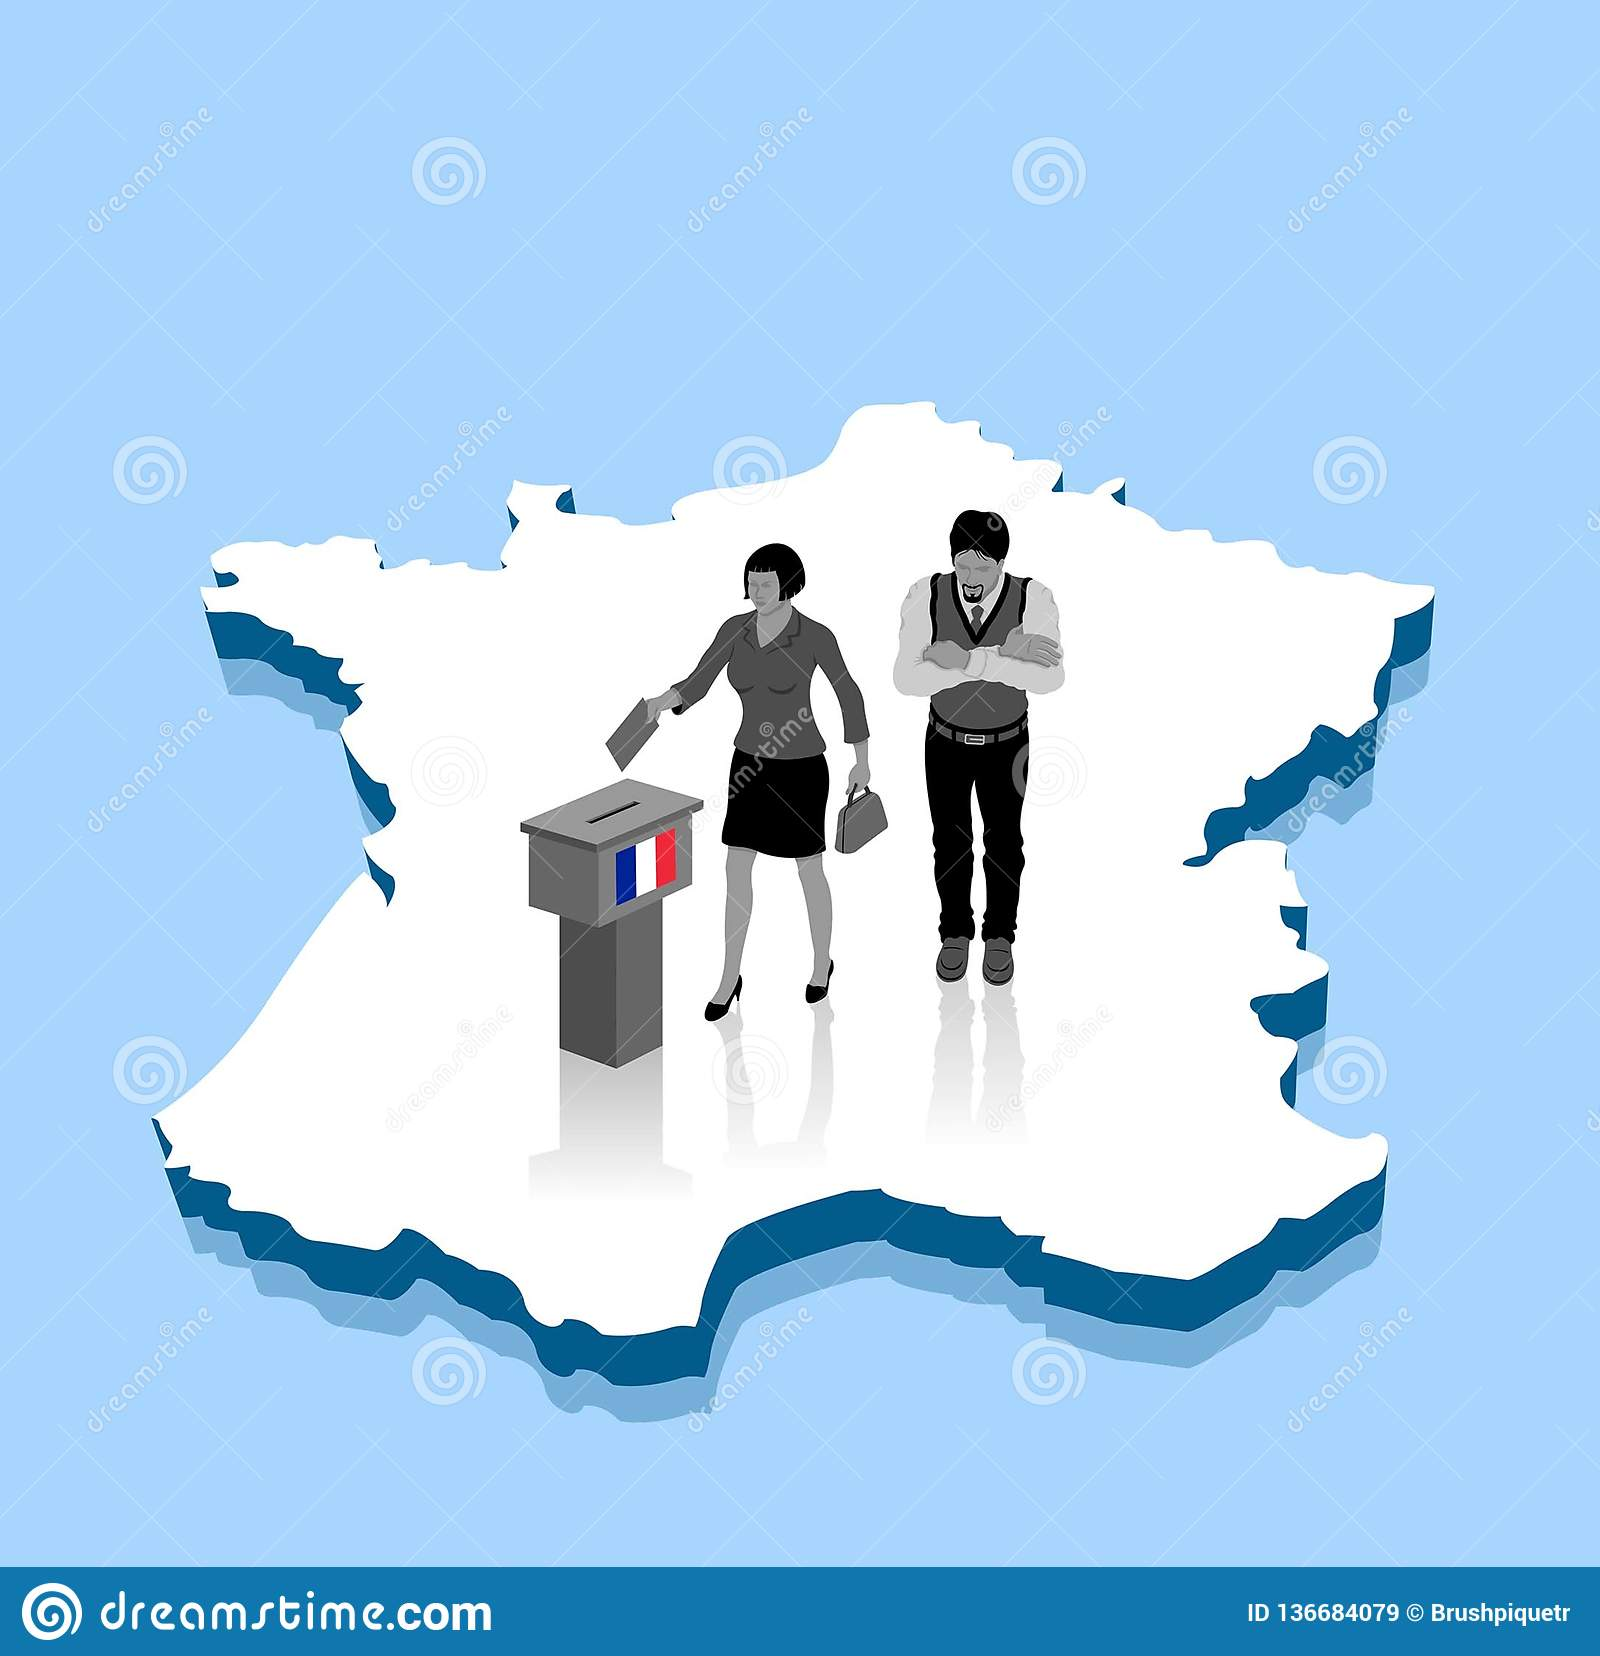 Map Of France Voting.French Voters Are Voting For Election Over A France 3d Map Stock